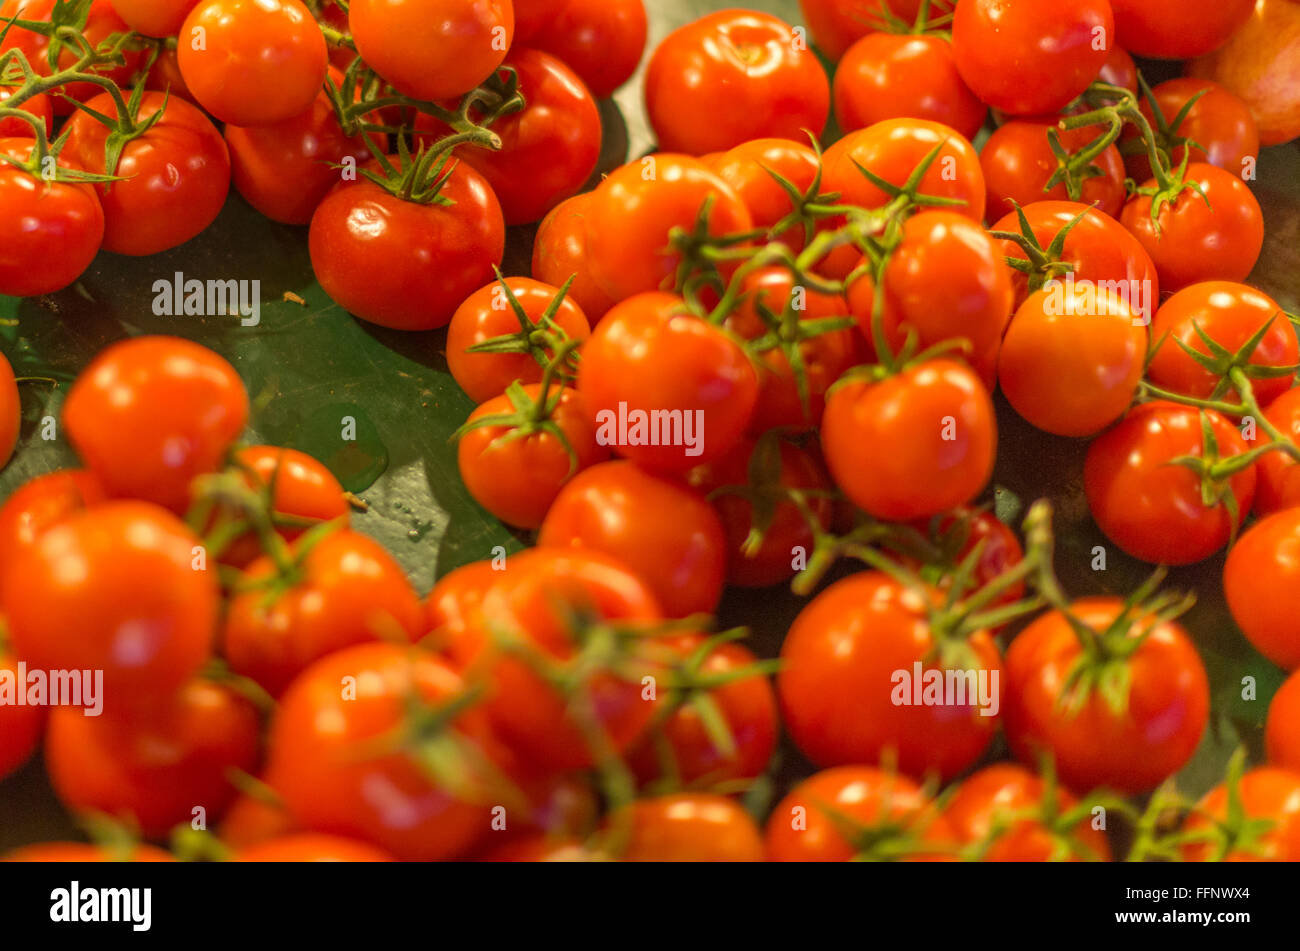 Red tomatoes on the vine - Stock Image